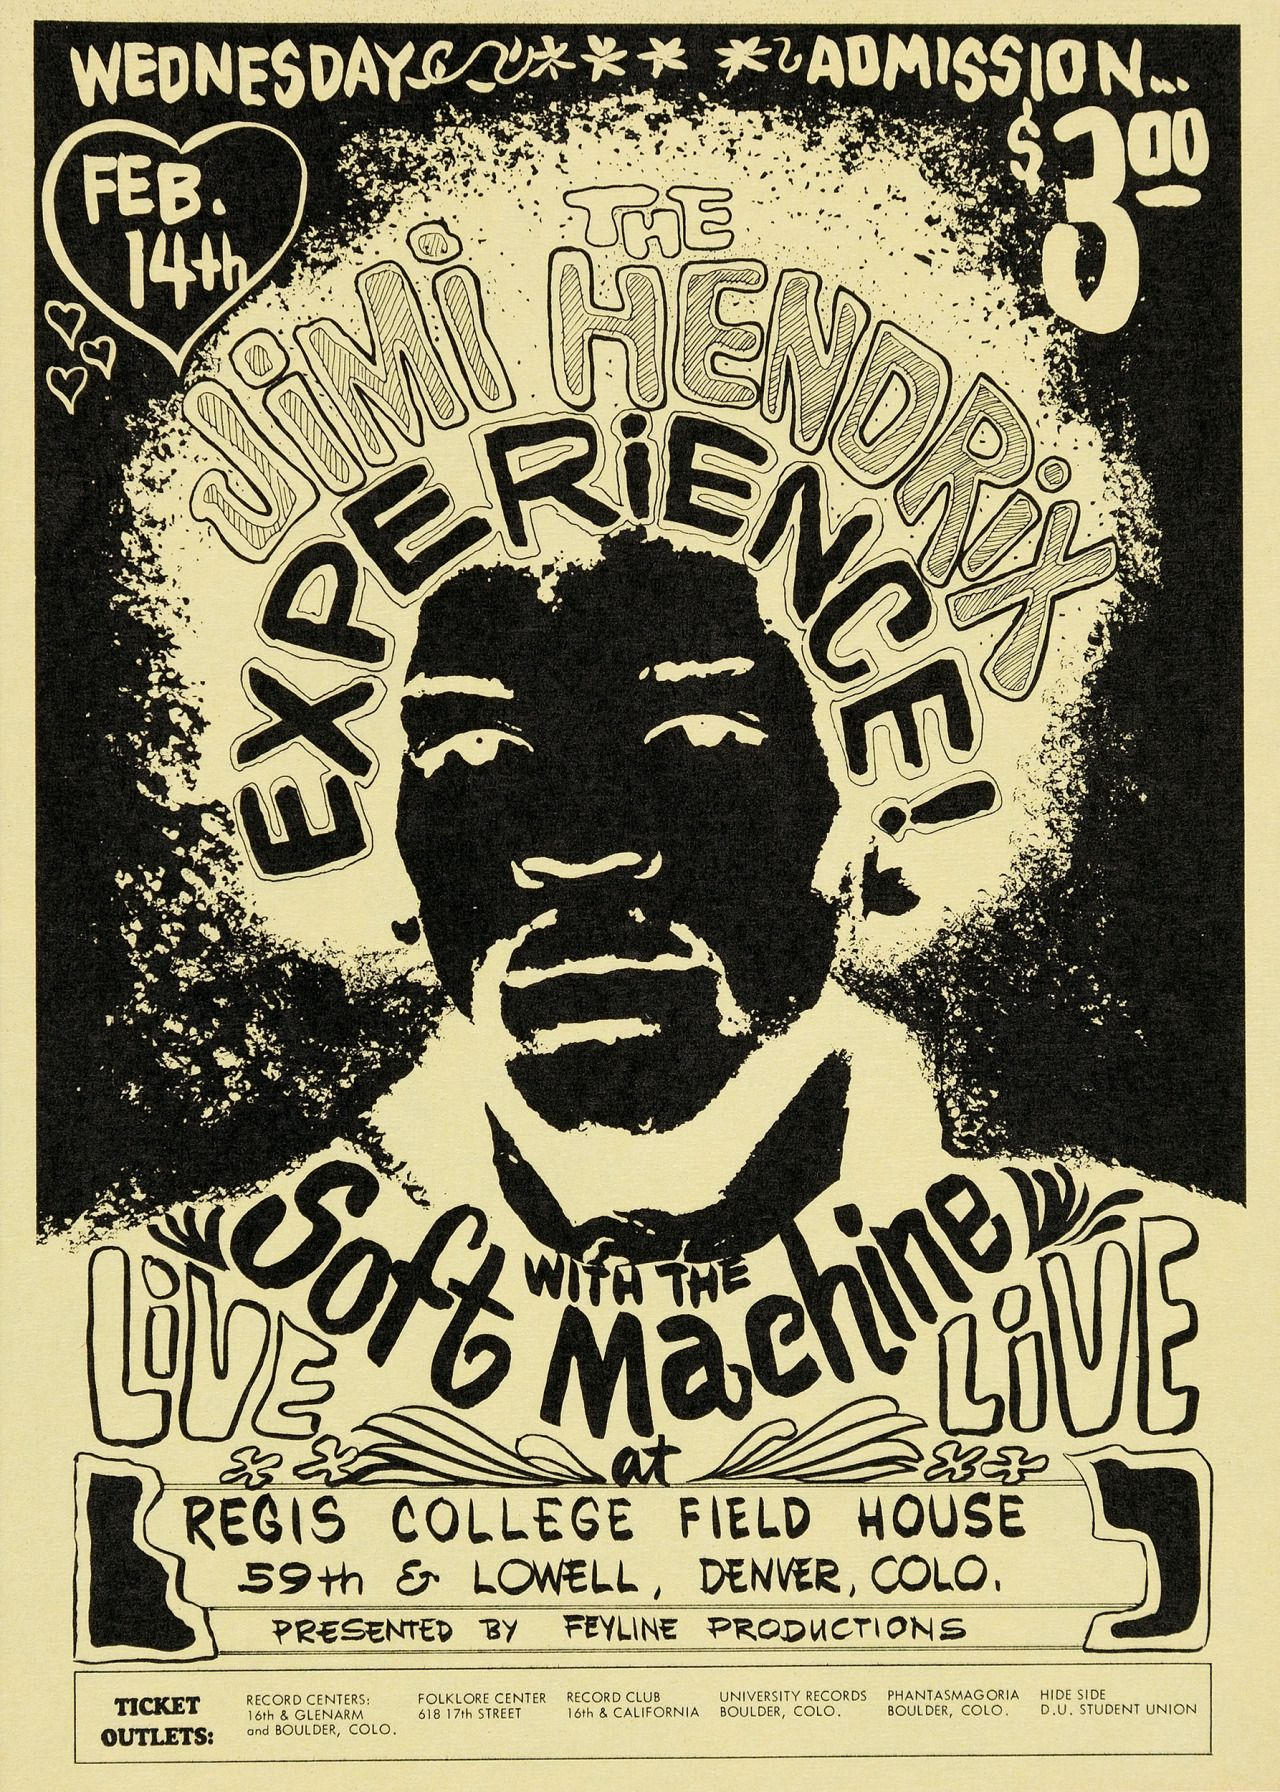 1968 JIMI HENDRIX EXPERIENCE *W-SOFT MACHINE* CONCERT POSTER *PSYCHEDELIC*